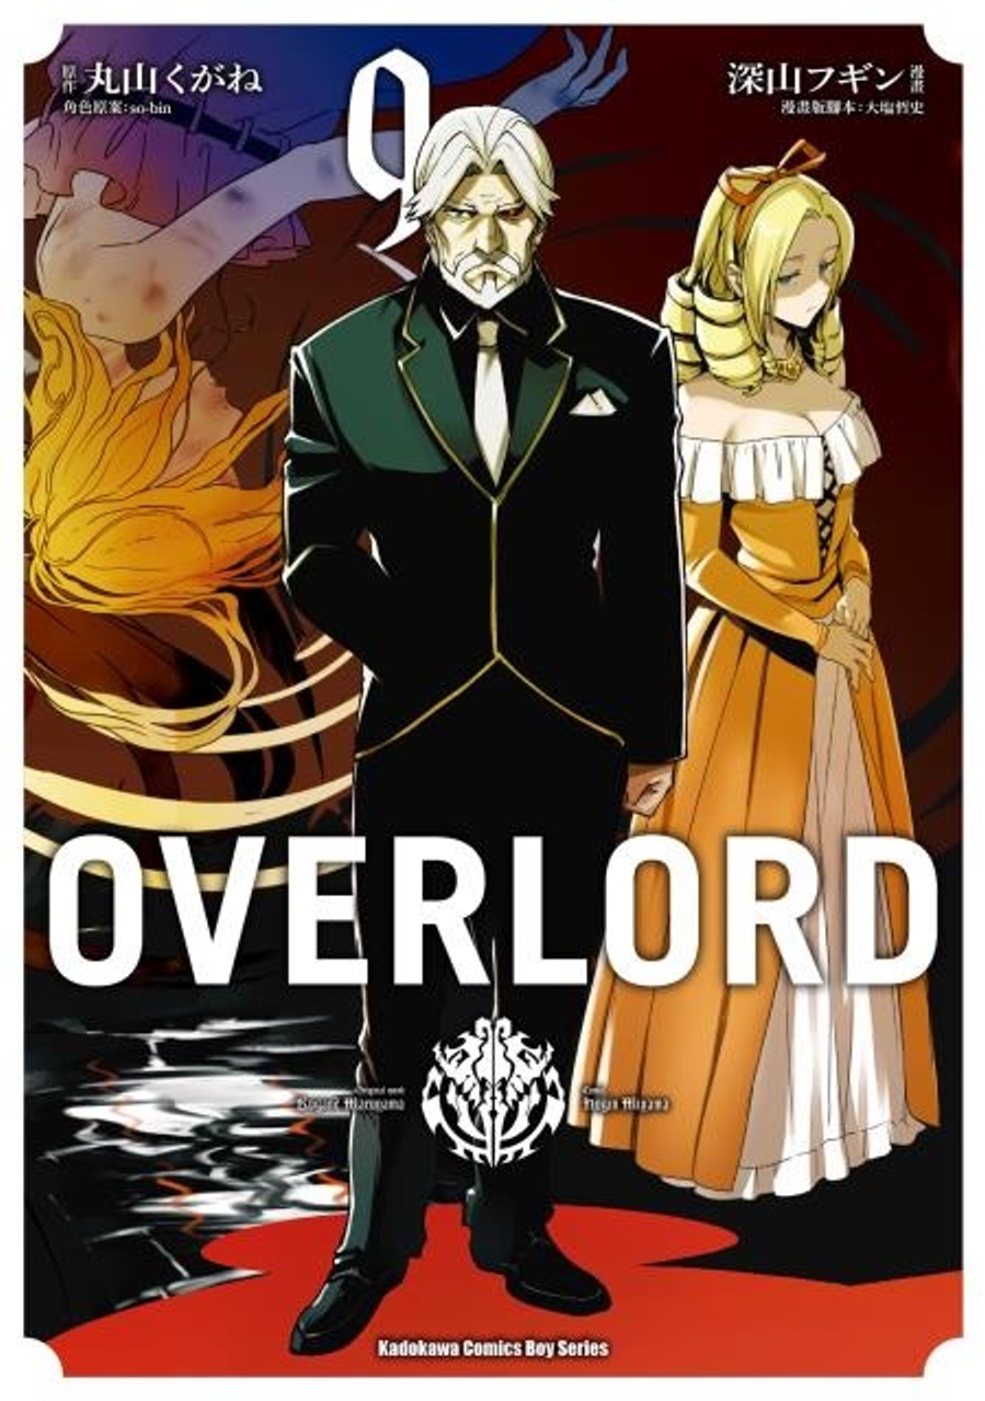 OVERLORD (9)